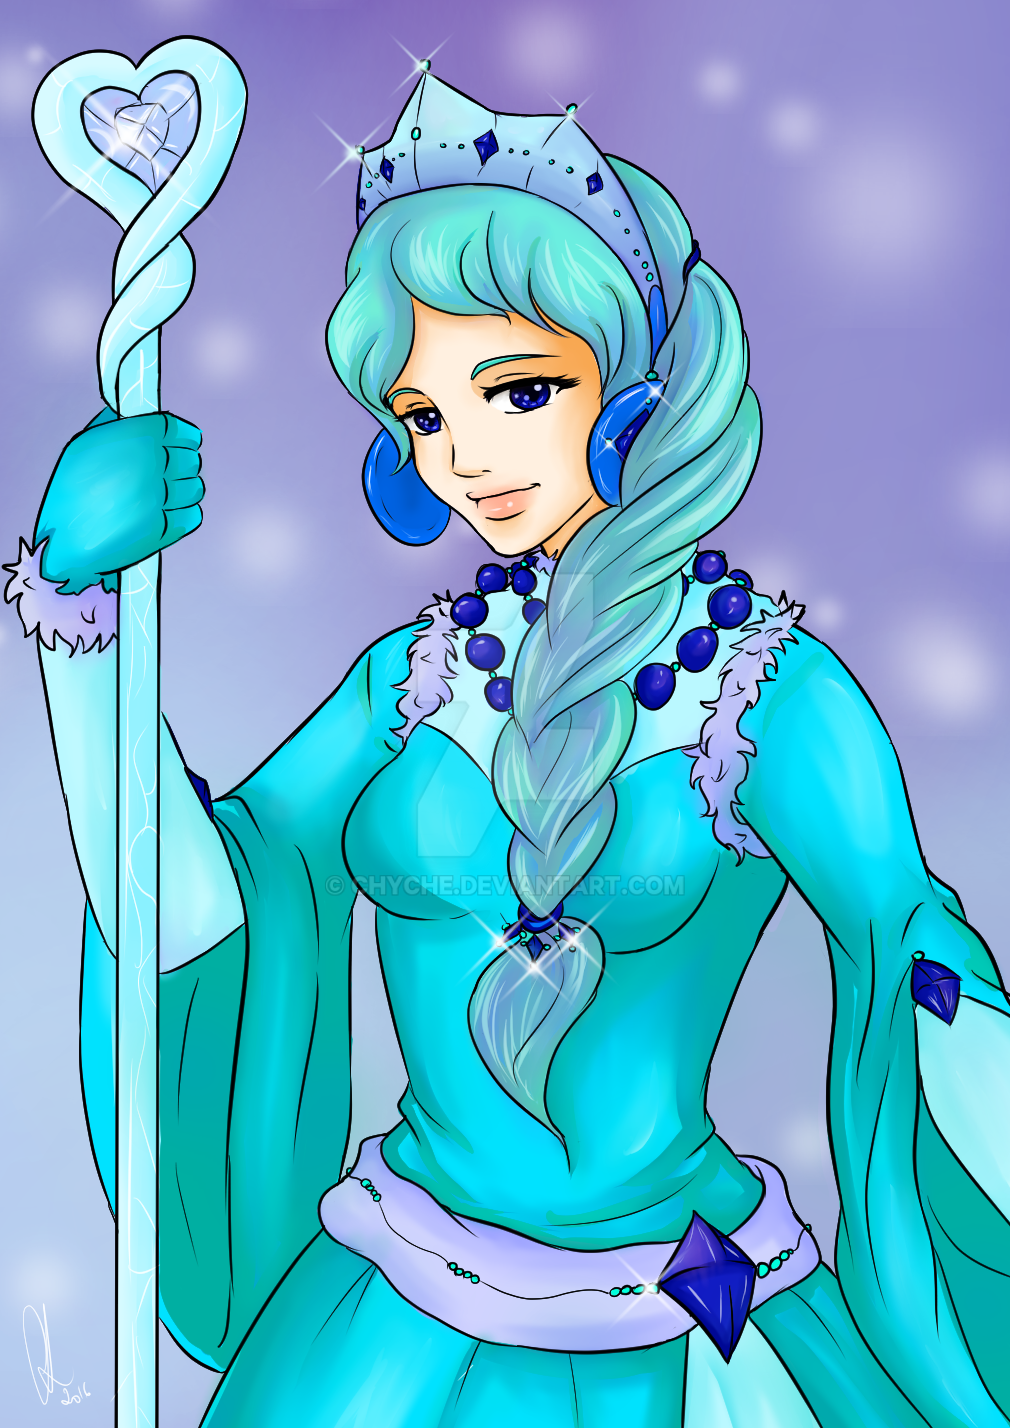 Snow Queen. by Chyche